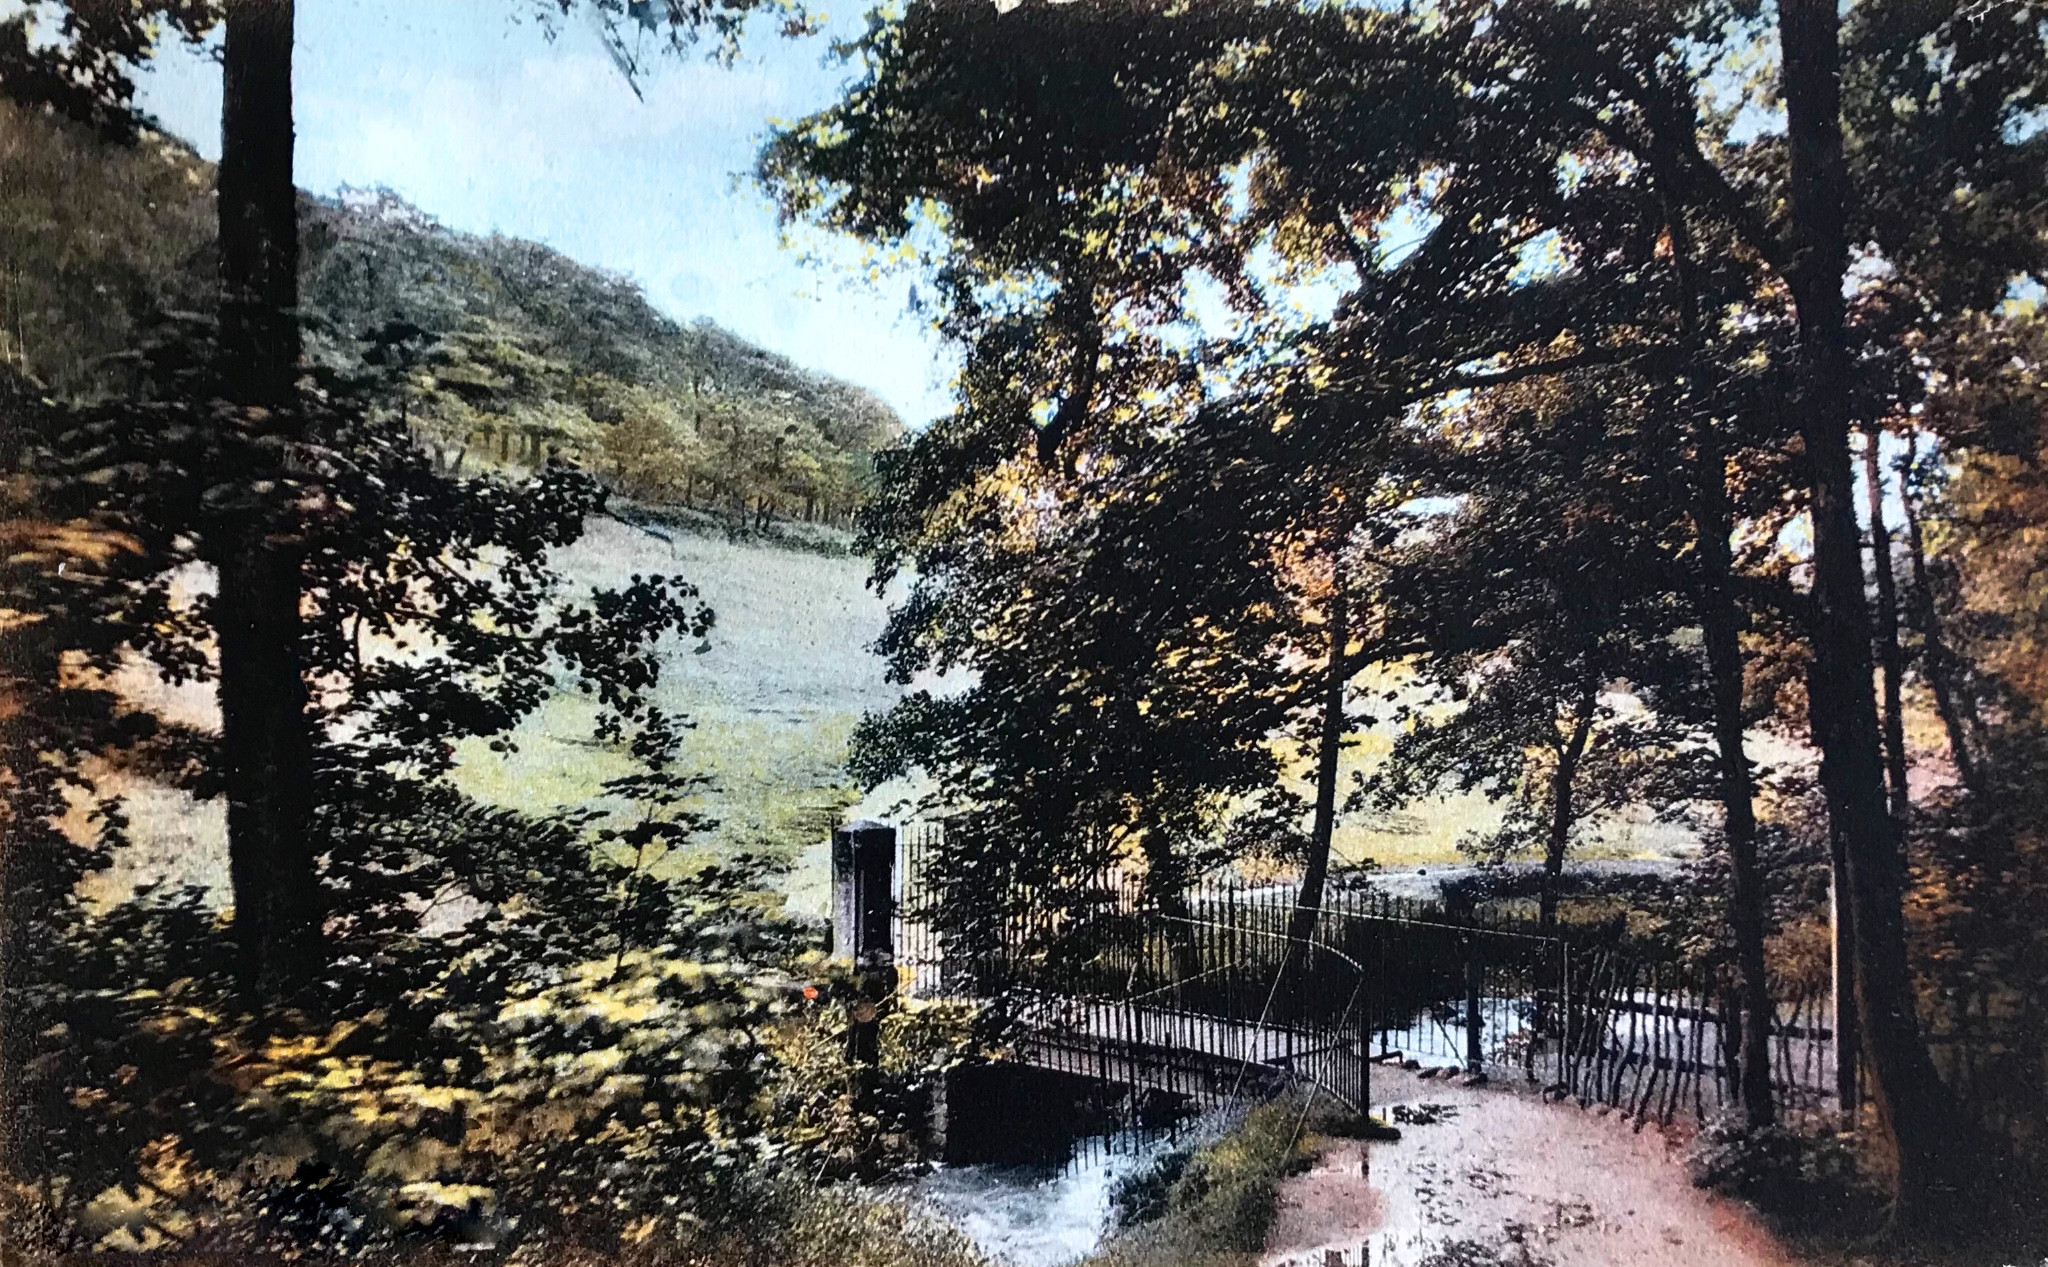 The Hollies, New Bridge with Iron Railings, undated